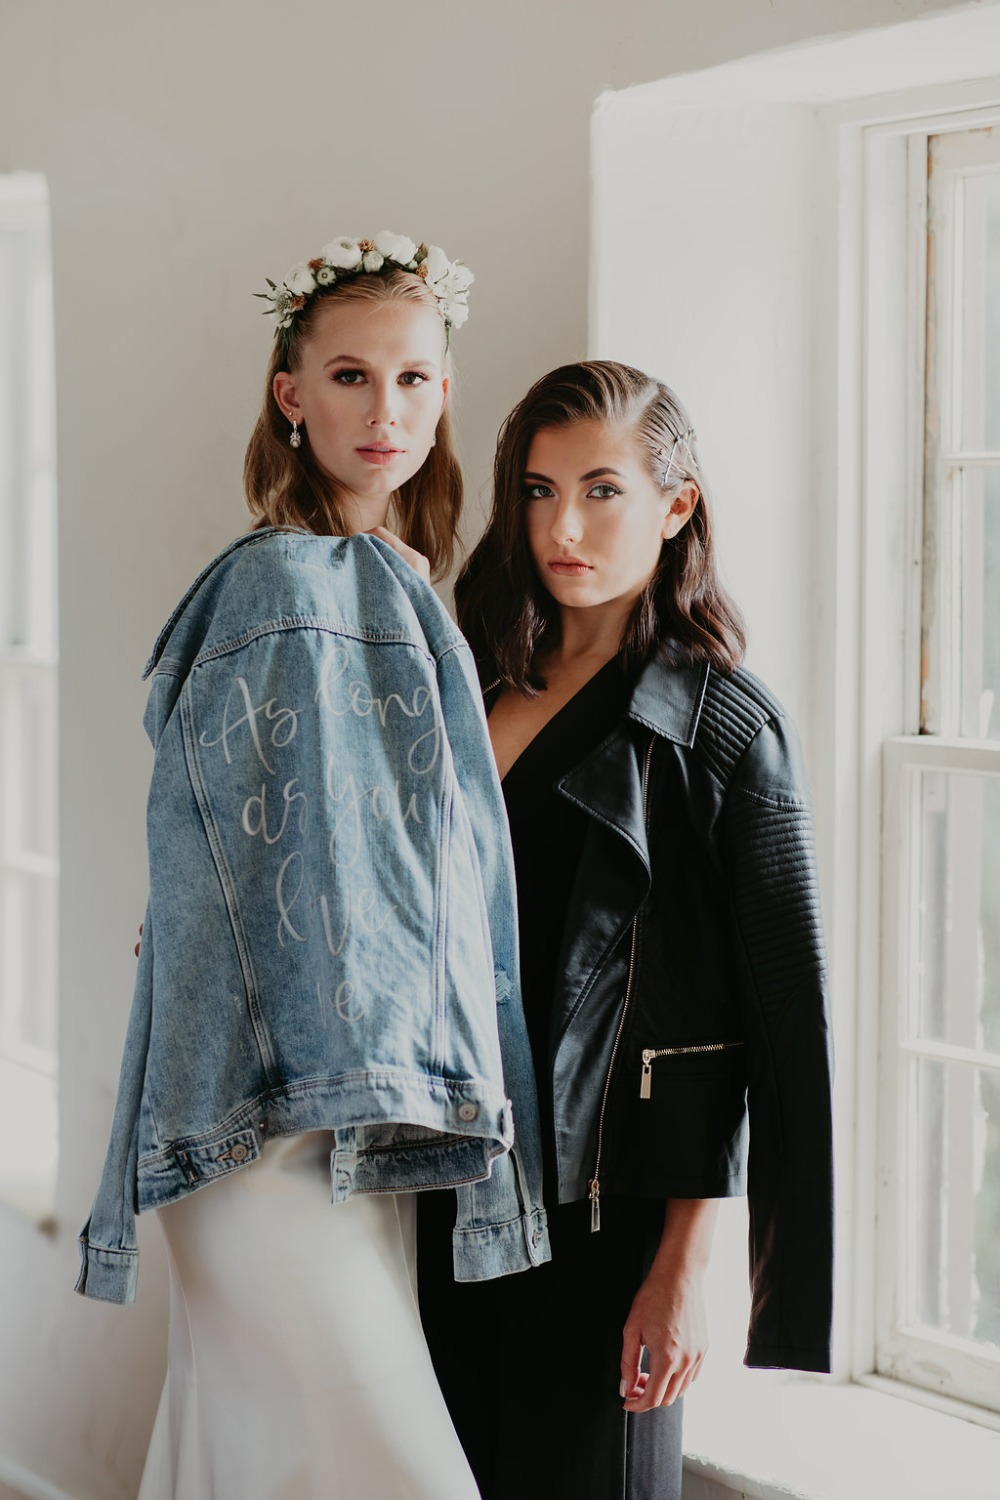 bride and bridesmaid modern style